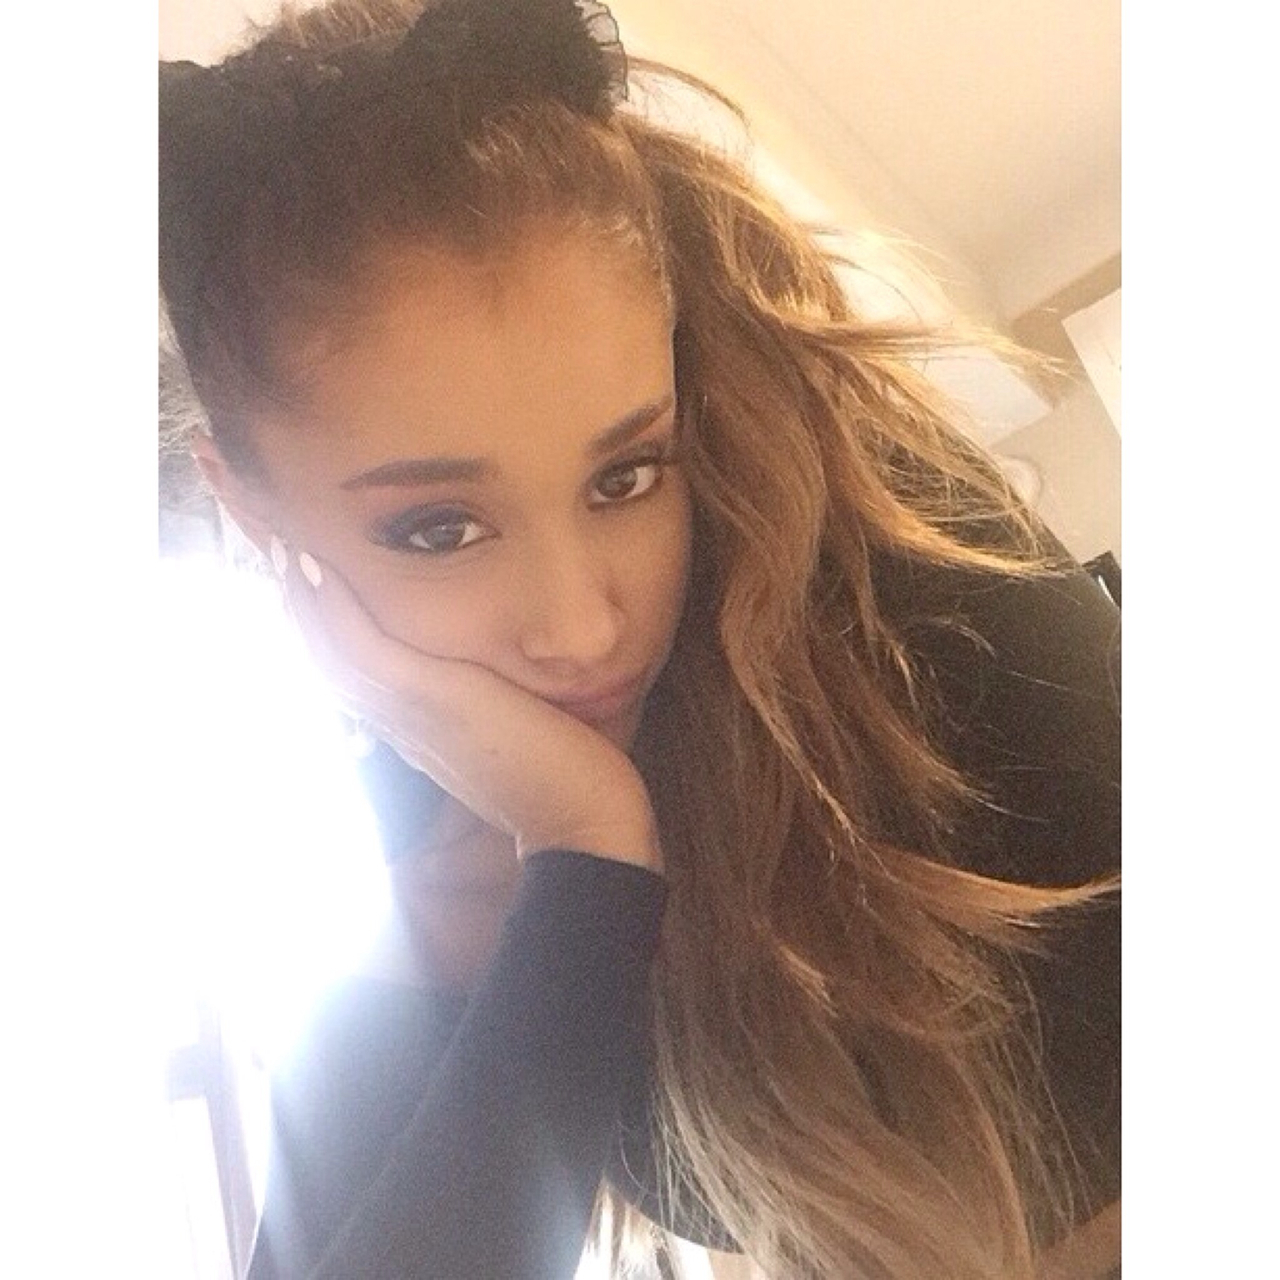 singer, movie, nice, ariana grande wi, fawkes, butera, follow, perfect, amazing, cute, tumblr, glamorous, cutie, tv shows, ariana grande rares, cinnamon, ophelia, pink, ariana grande, fantasy, coco, nickelodeon, legacy, blue, disney, followtrain